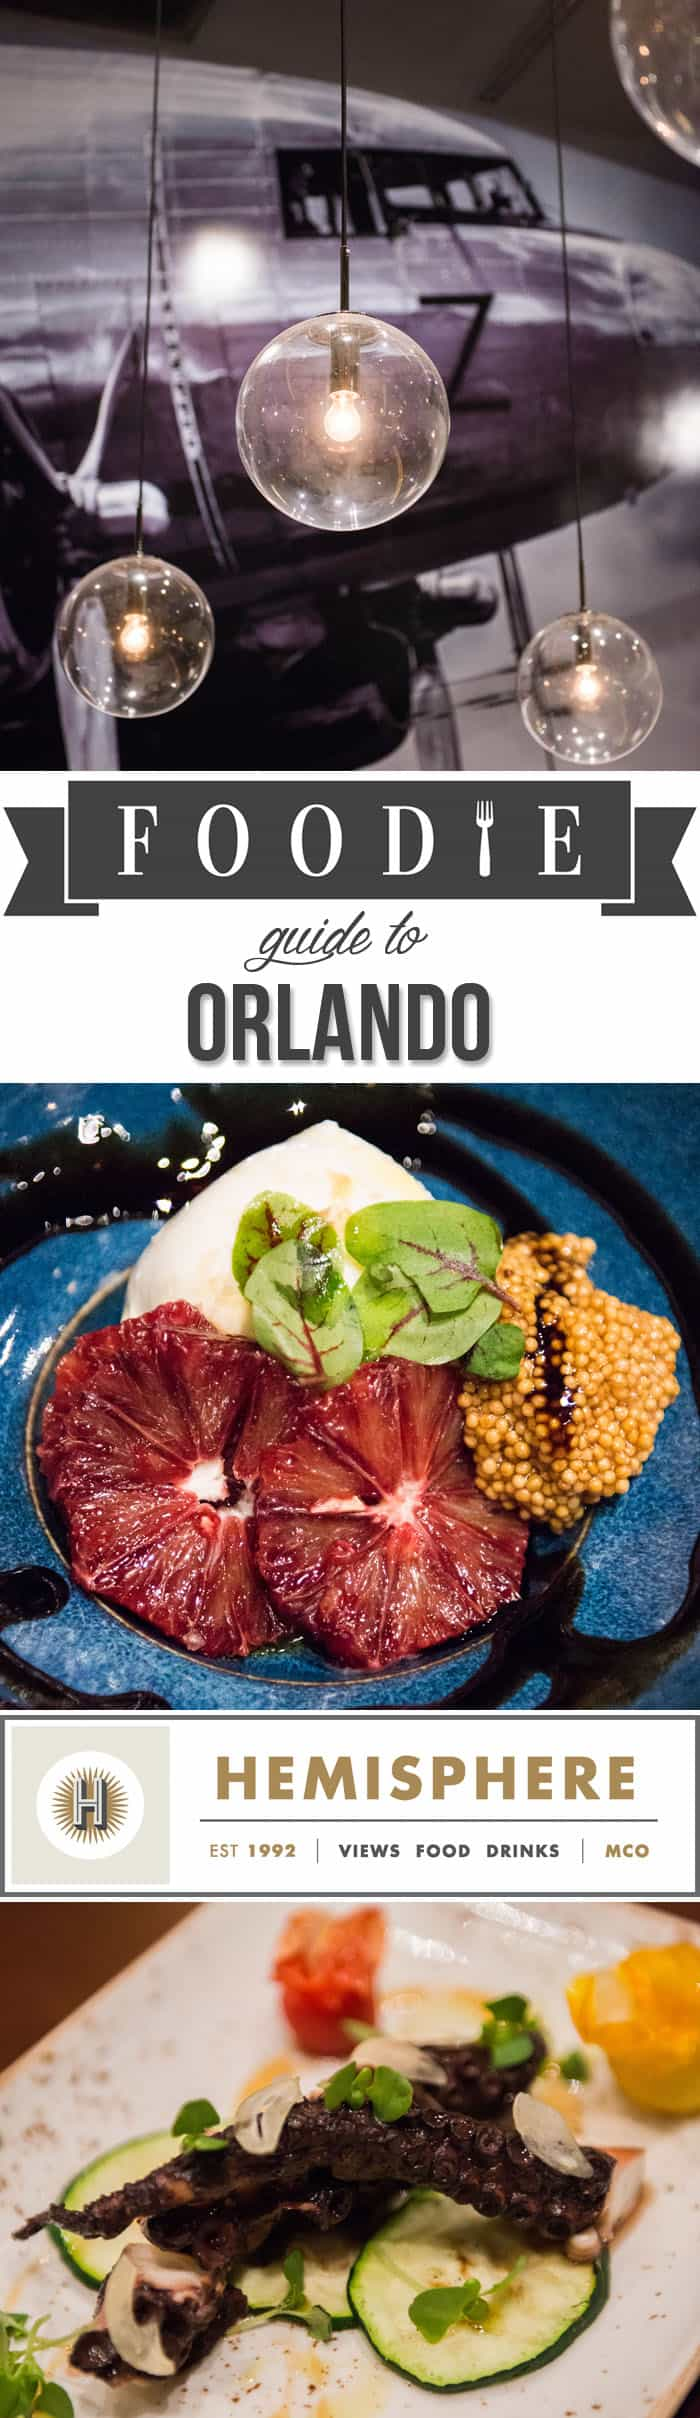 Whether you're living in Florida, visiting on vacation, or passing through, you'll love my Foodie's Guide to Orlando: the re-imagined Hemisphere restaurant.